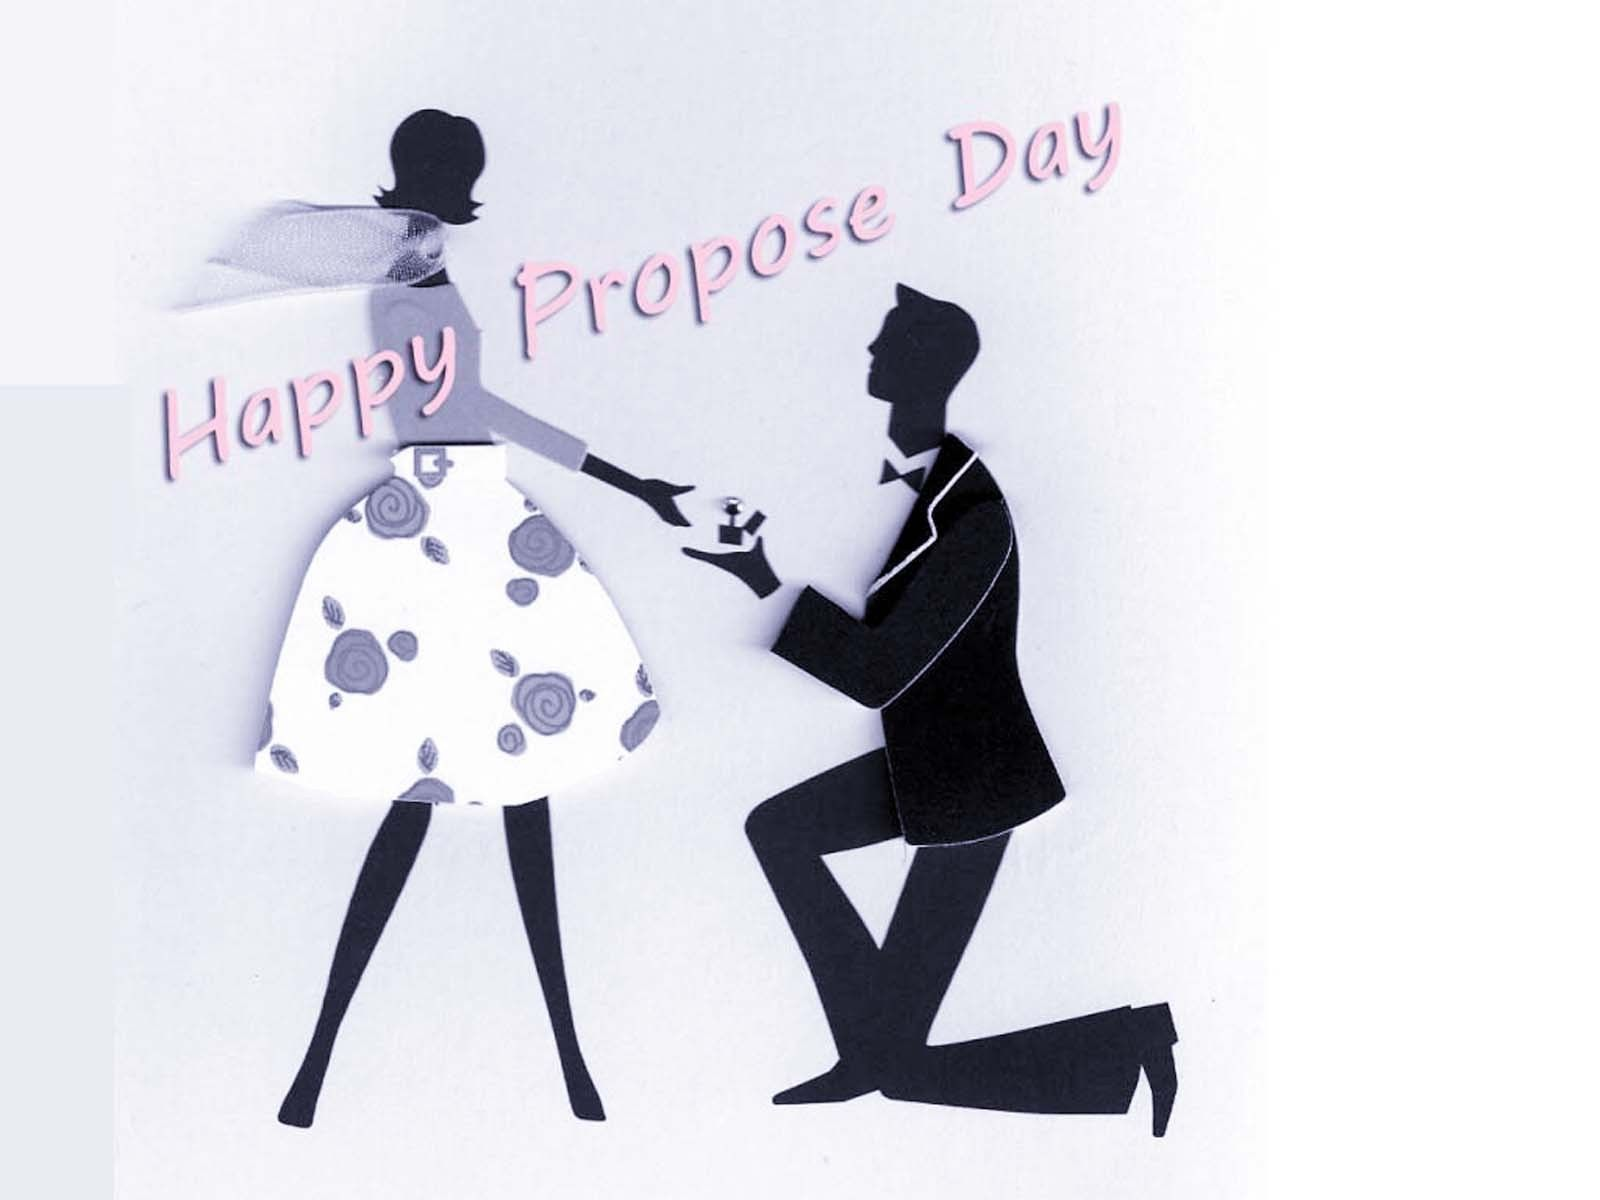 Happy Propose Day HD Image For Facebook